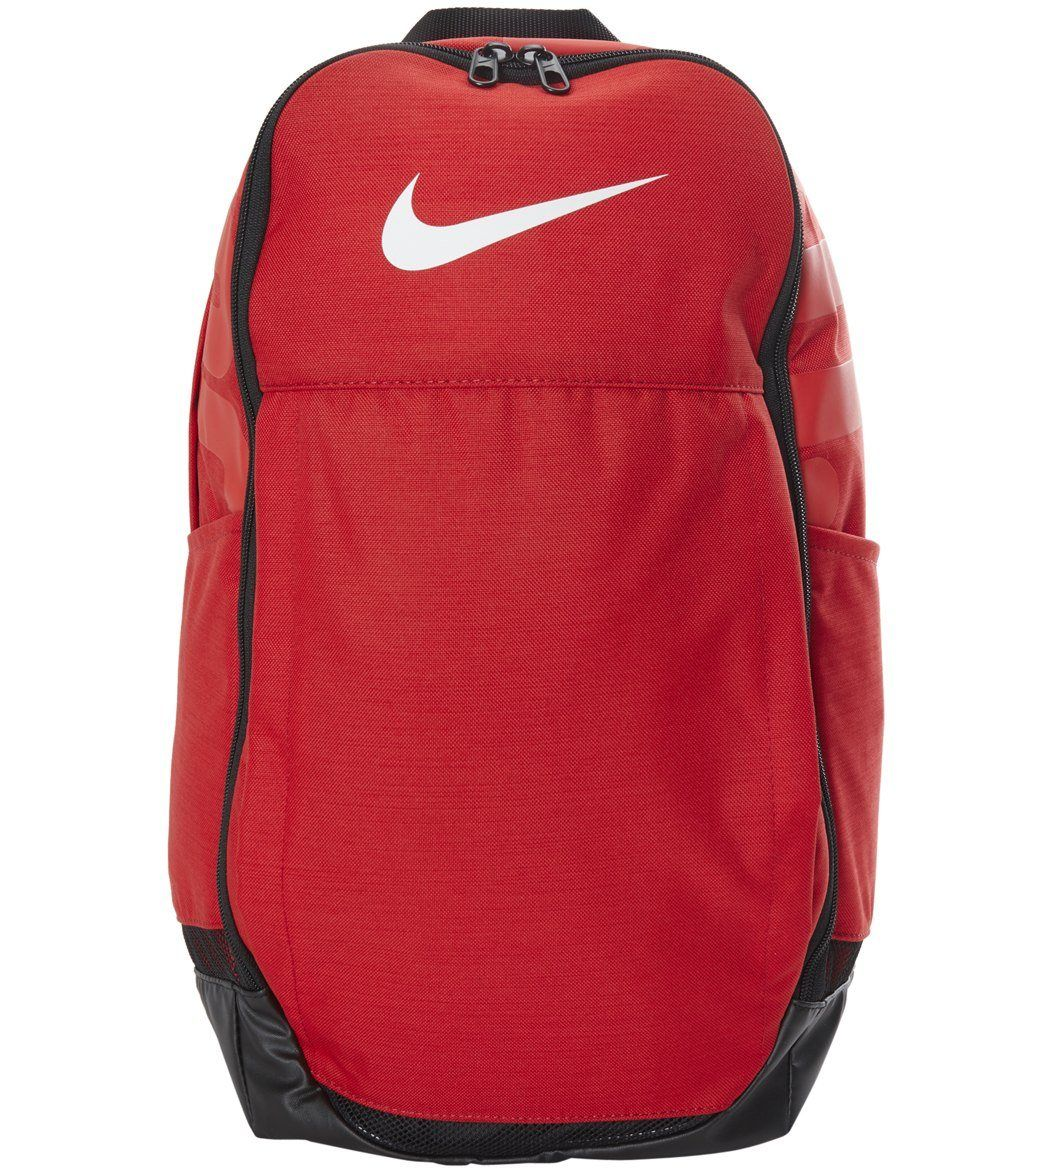 Nike Extra Large Training Backpack at SwimOutlet.com - Free Shipping 09a46eee9e461